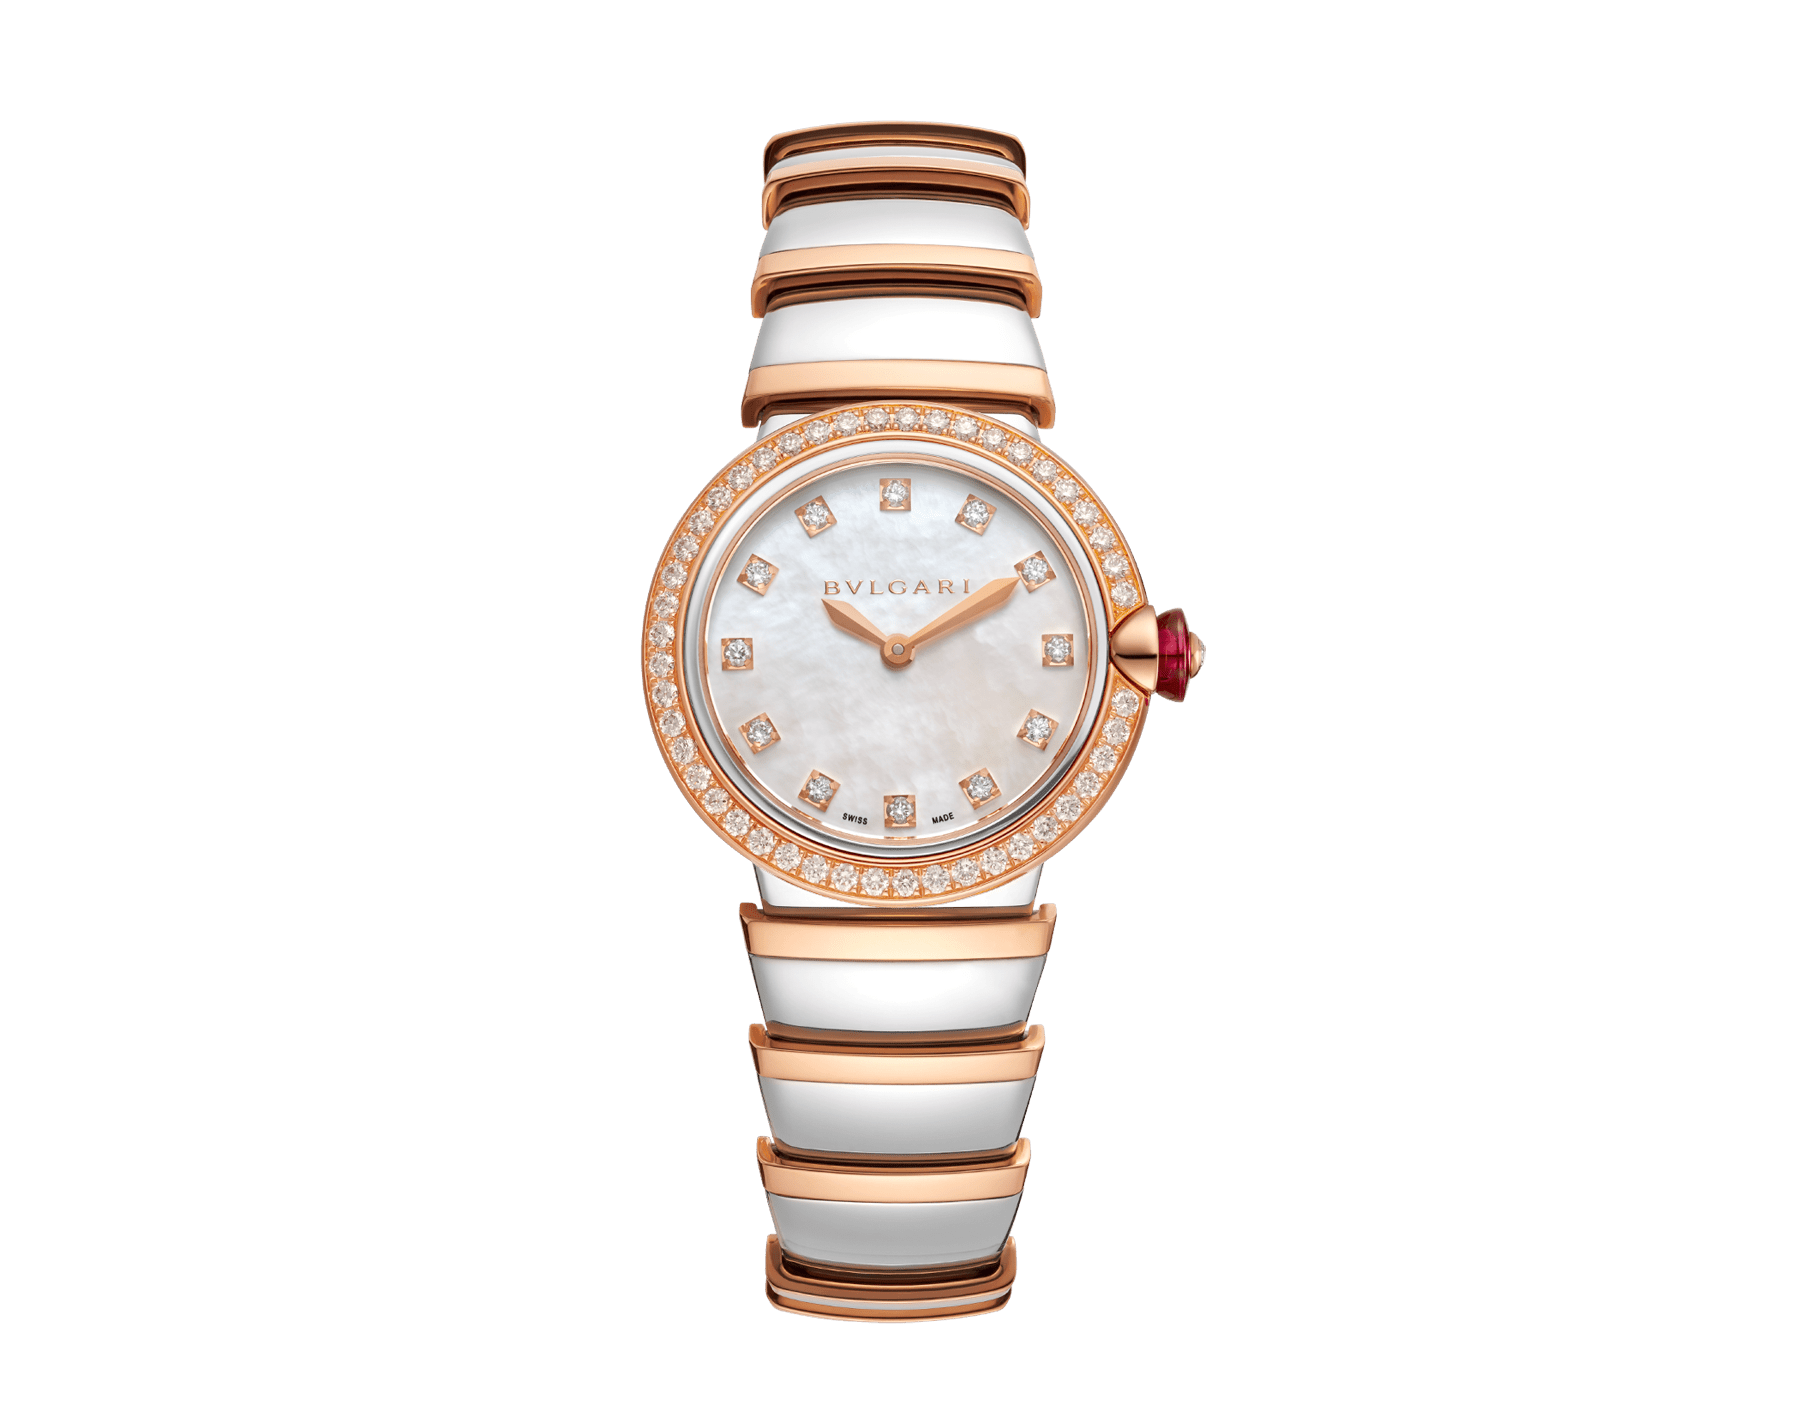 LVCEA watch with stainless steel case, 18 kt rose gold bezel set with brilliant-cut diamonds, white mother-of-pearl dial, diamond indexes and bracelet in stainless teel and 18 kt rose gold 102475 image 1